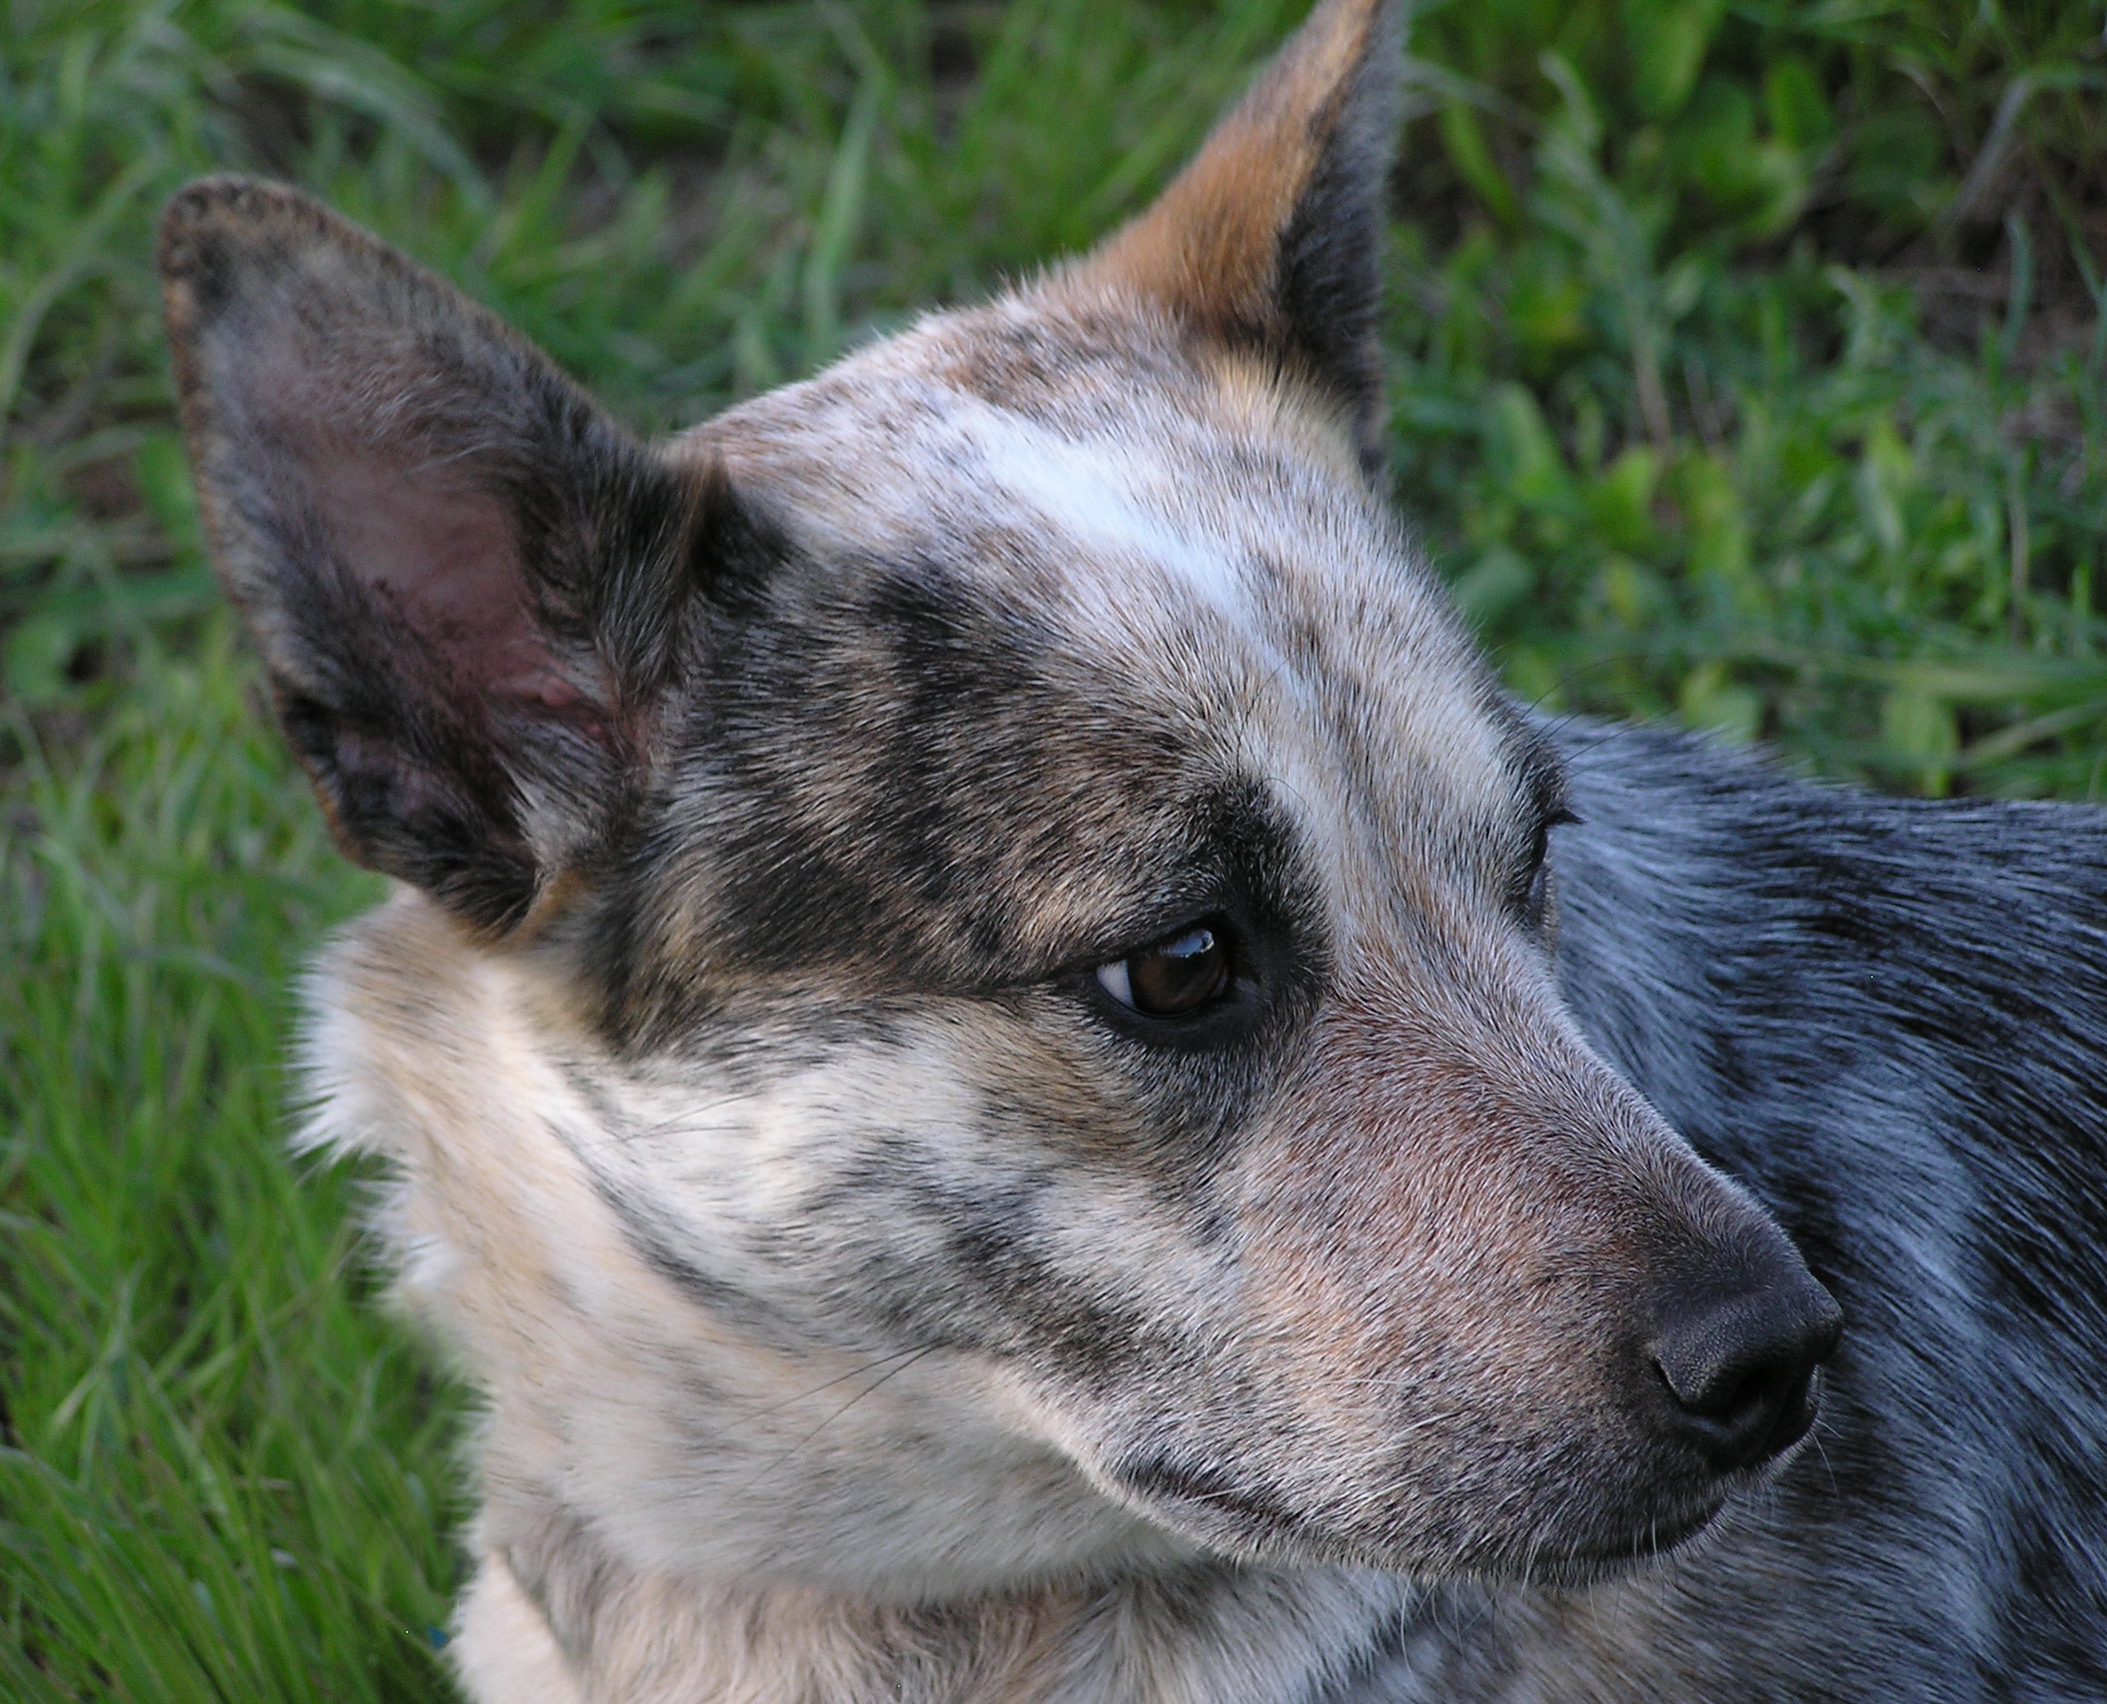 cattle dog, australian cattle dog, blue heeler